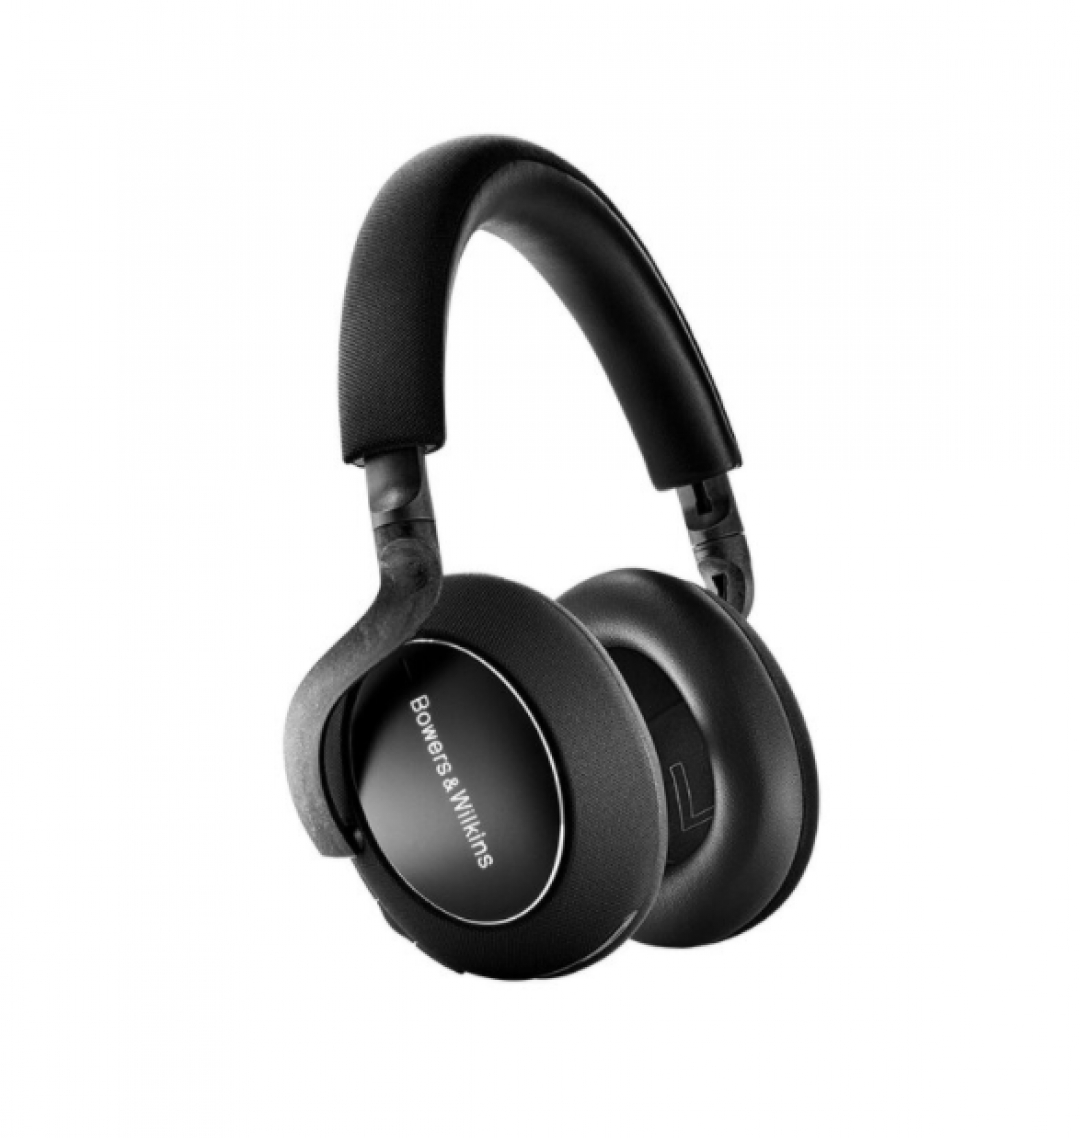 Tai nghe chống ồn Bowers & Wilkins PX7 Carbon Edition